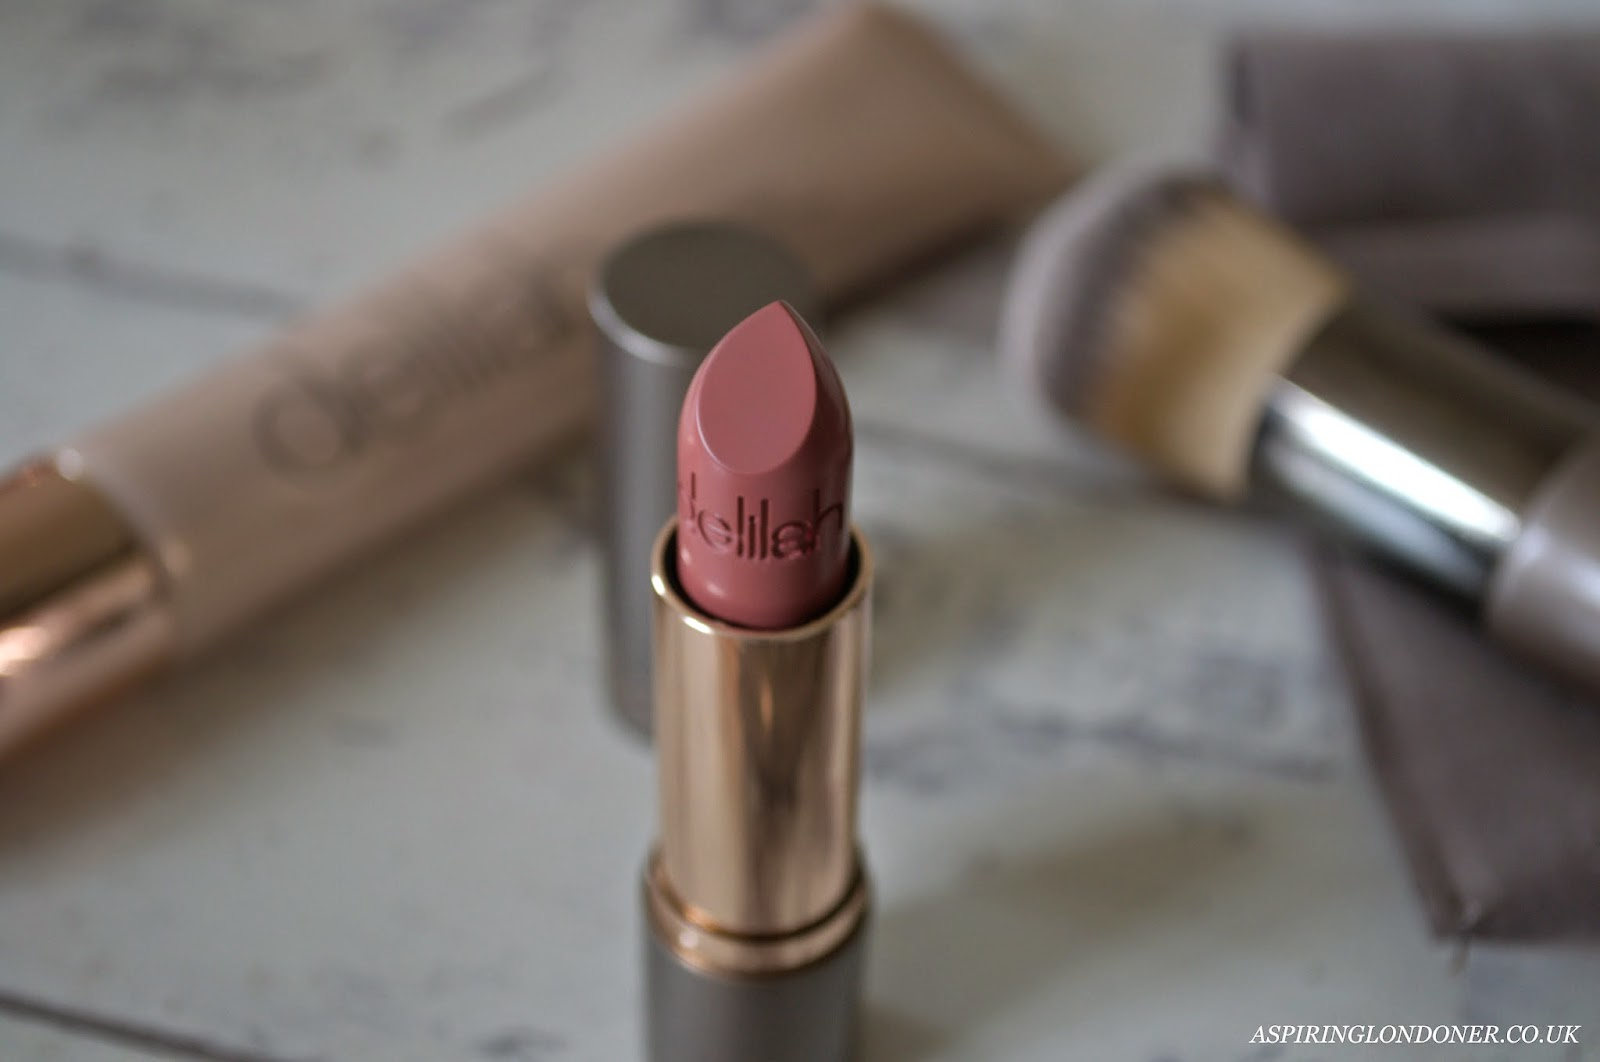 Delilah Cosmetics Colour Intense Cream Lipstick Honesty Review - Aspiring Londoner